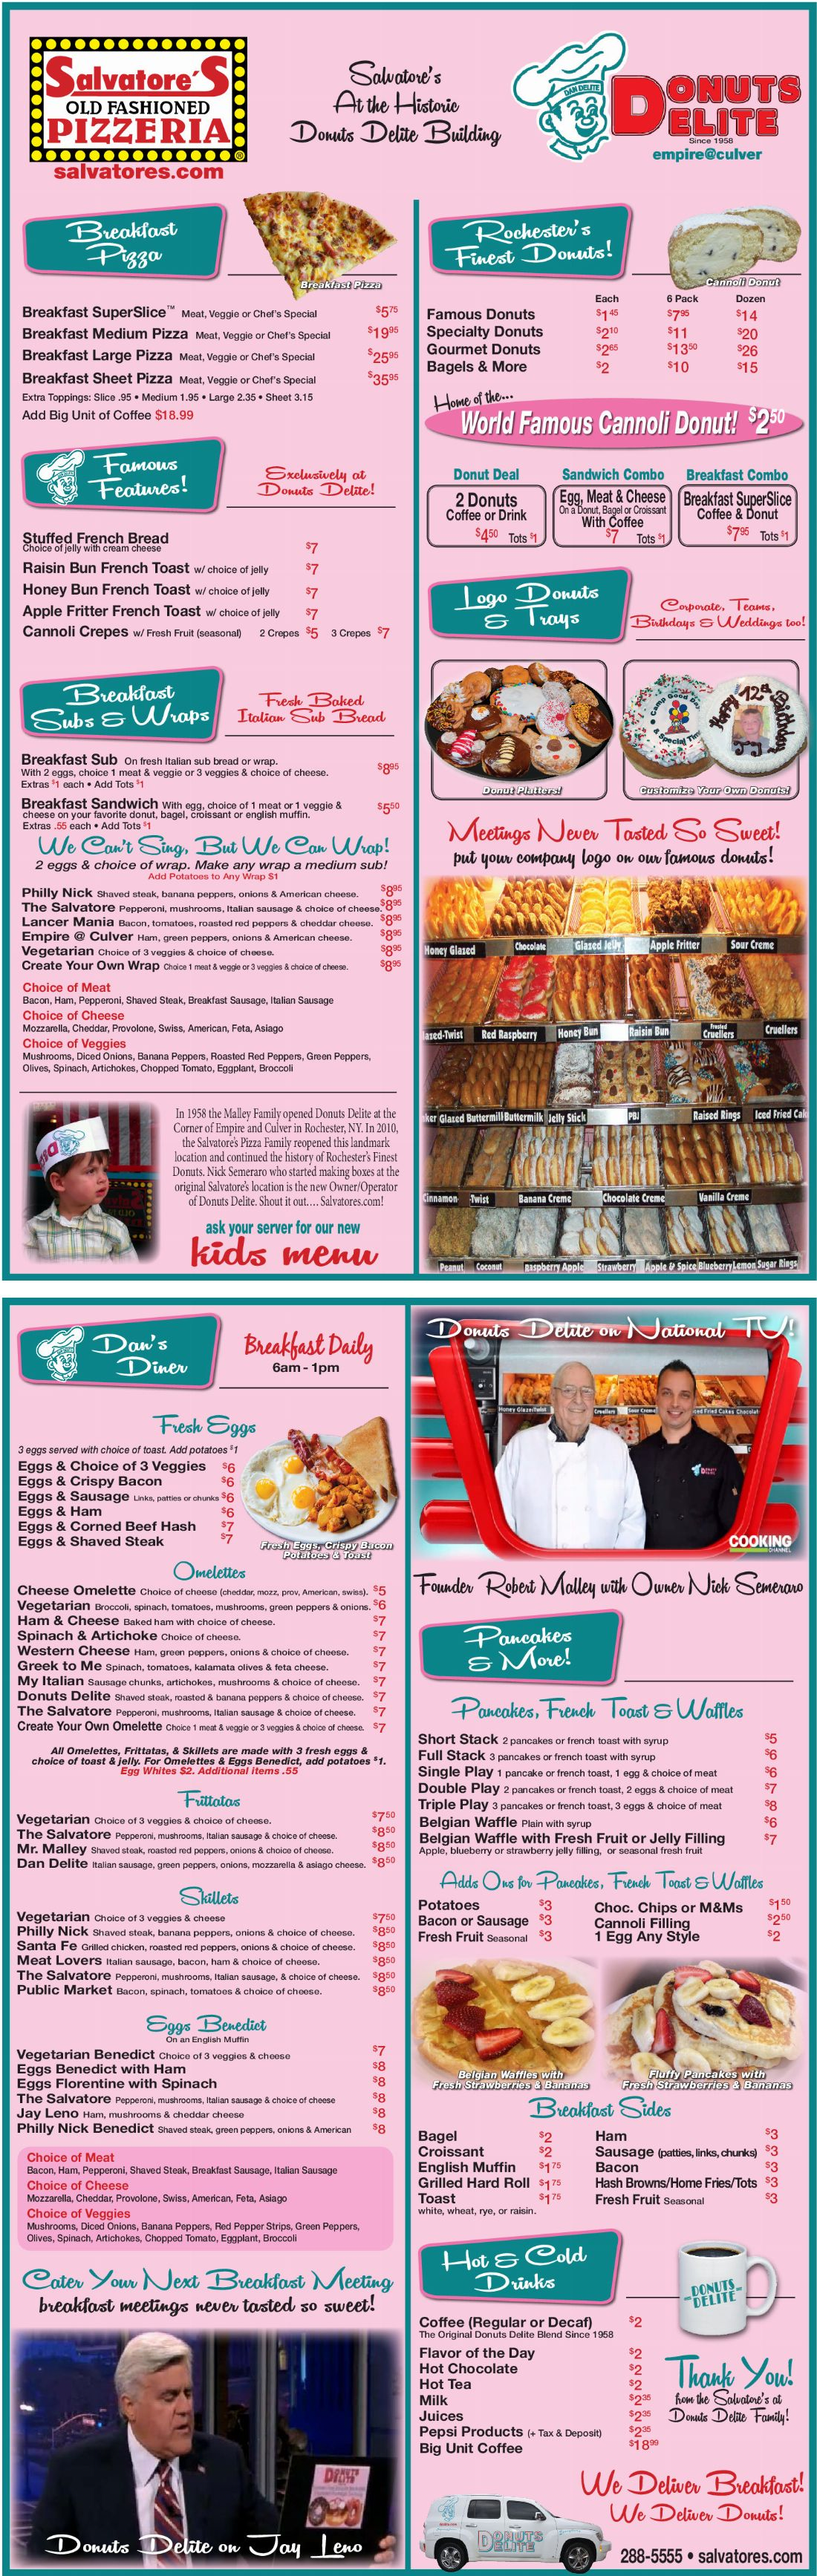 Donuts Delite Breakfast Menu